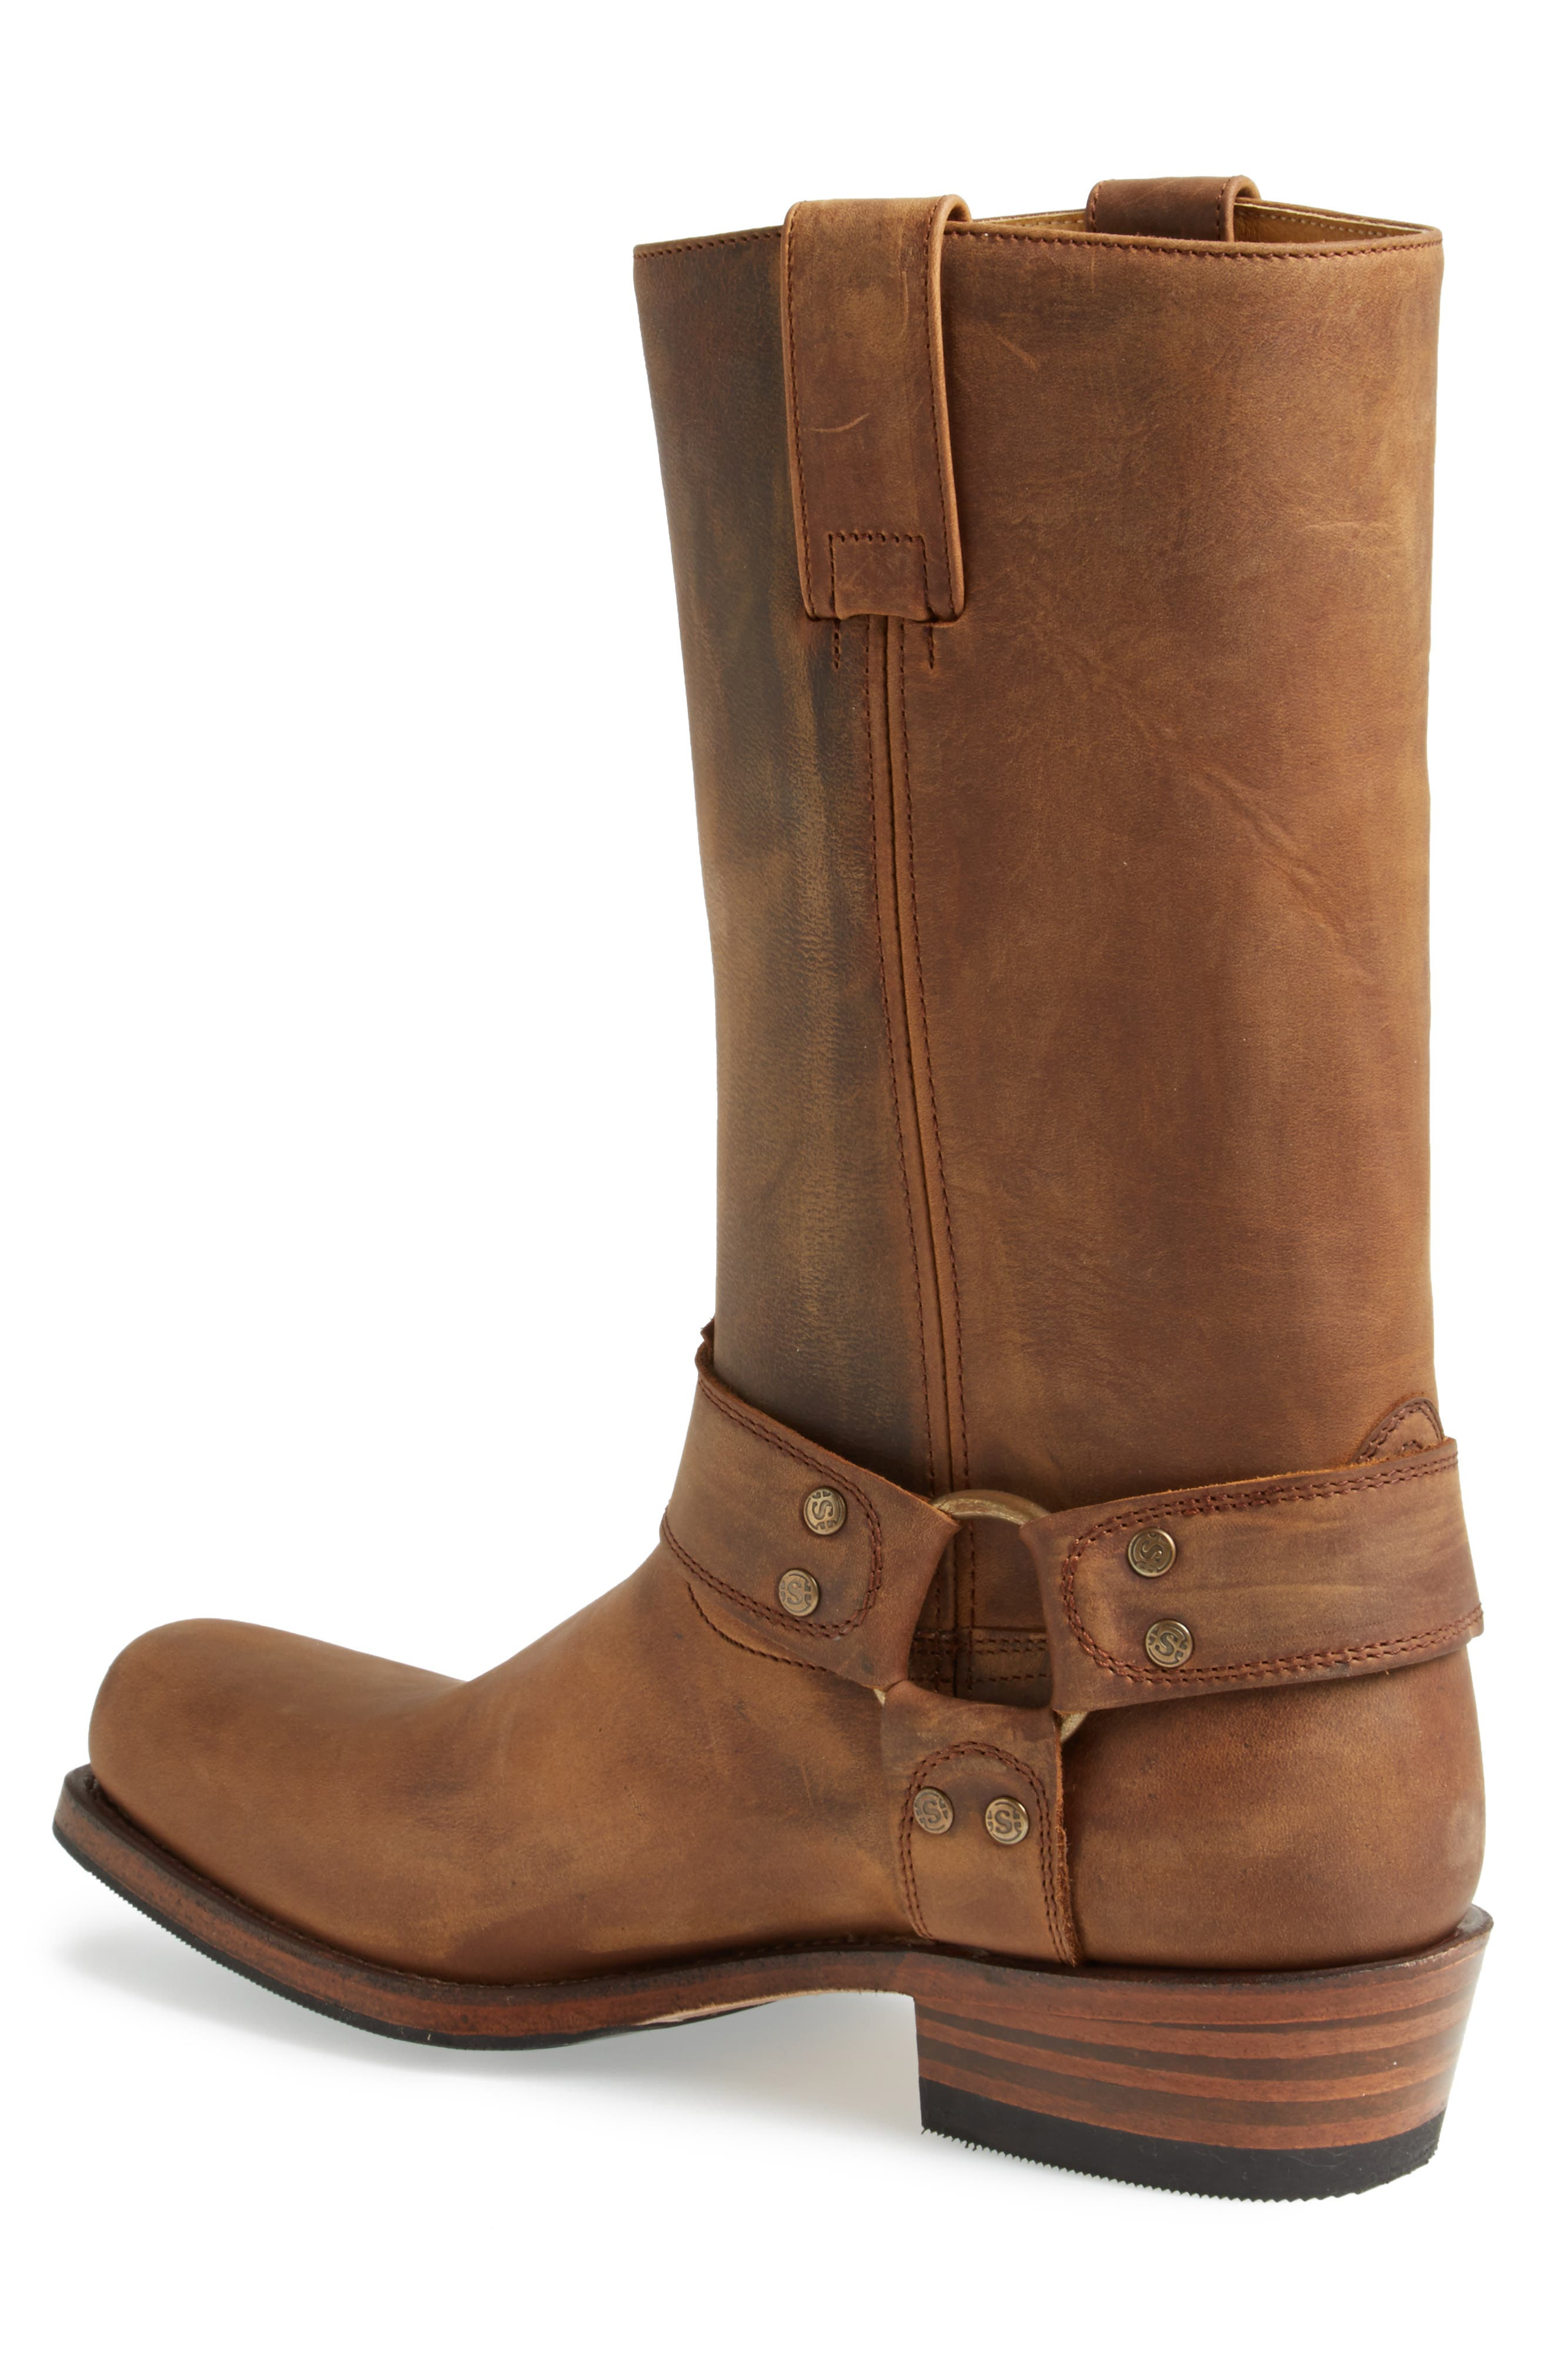 Boots Tall Harness Boot,                             Alternate thumbnail 2, color,                             TAN